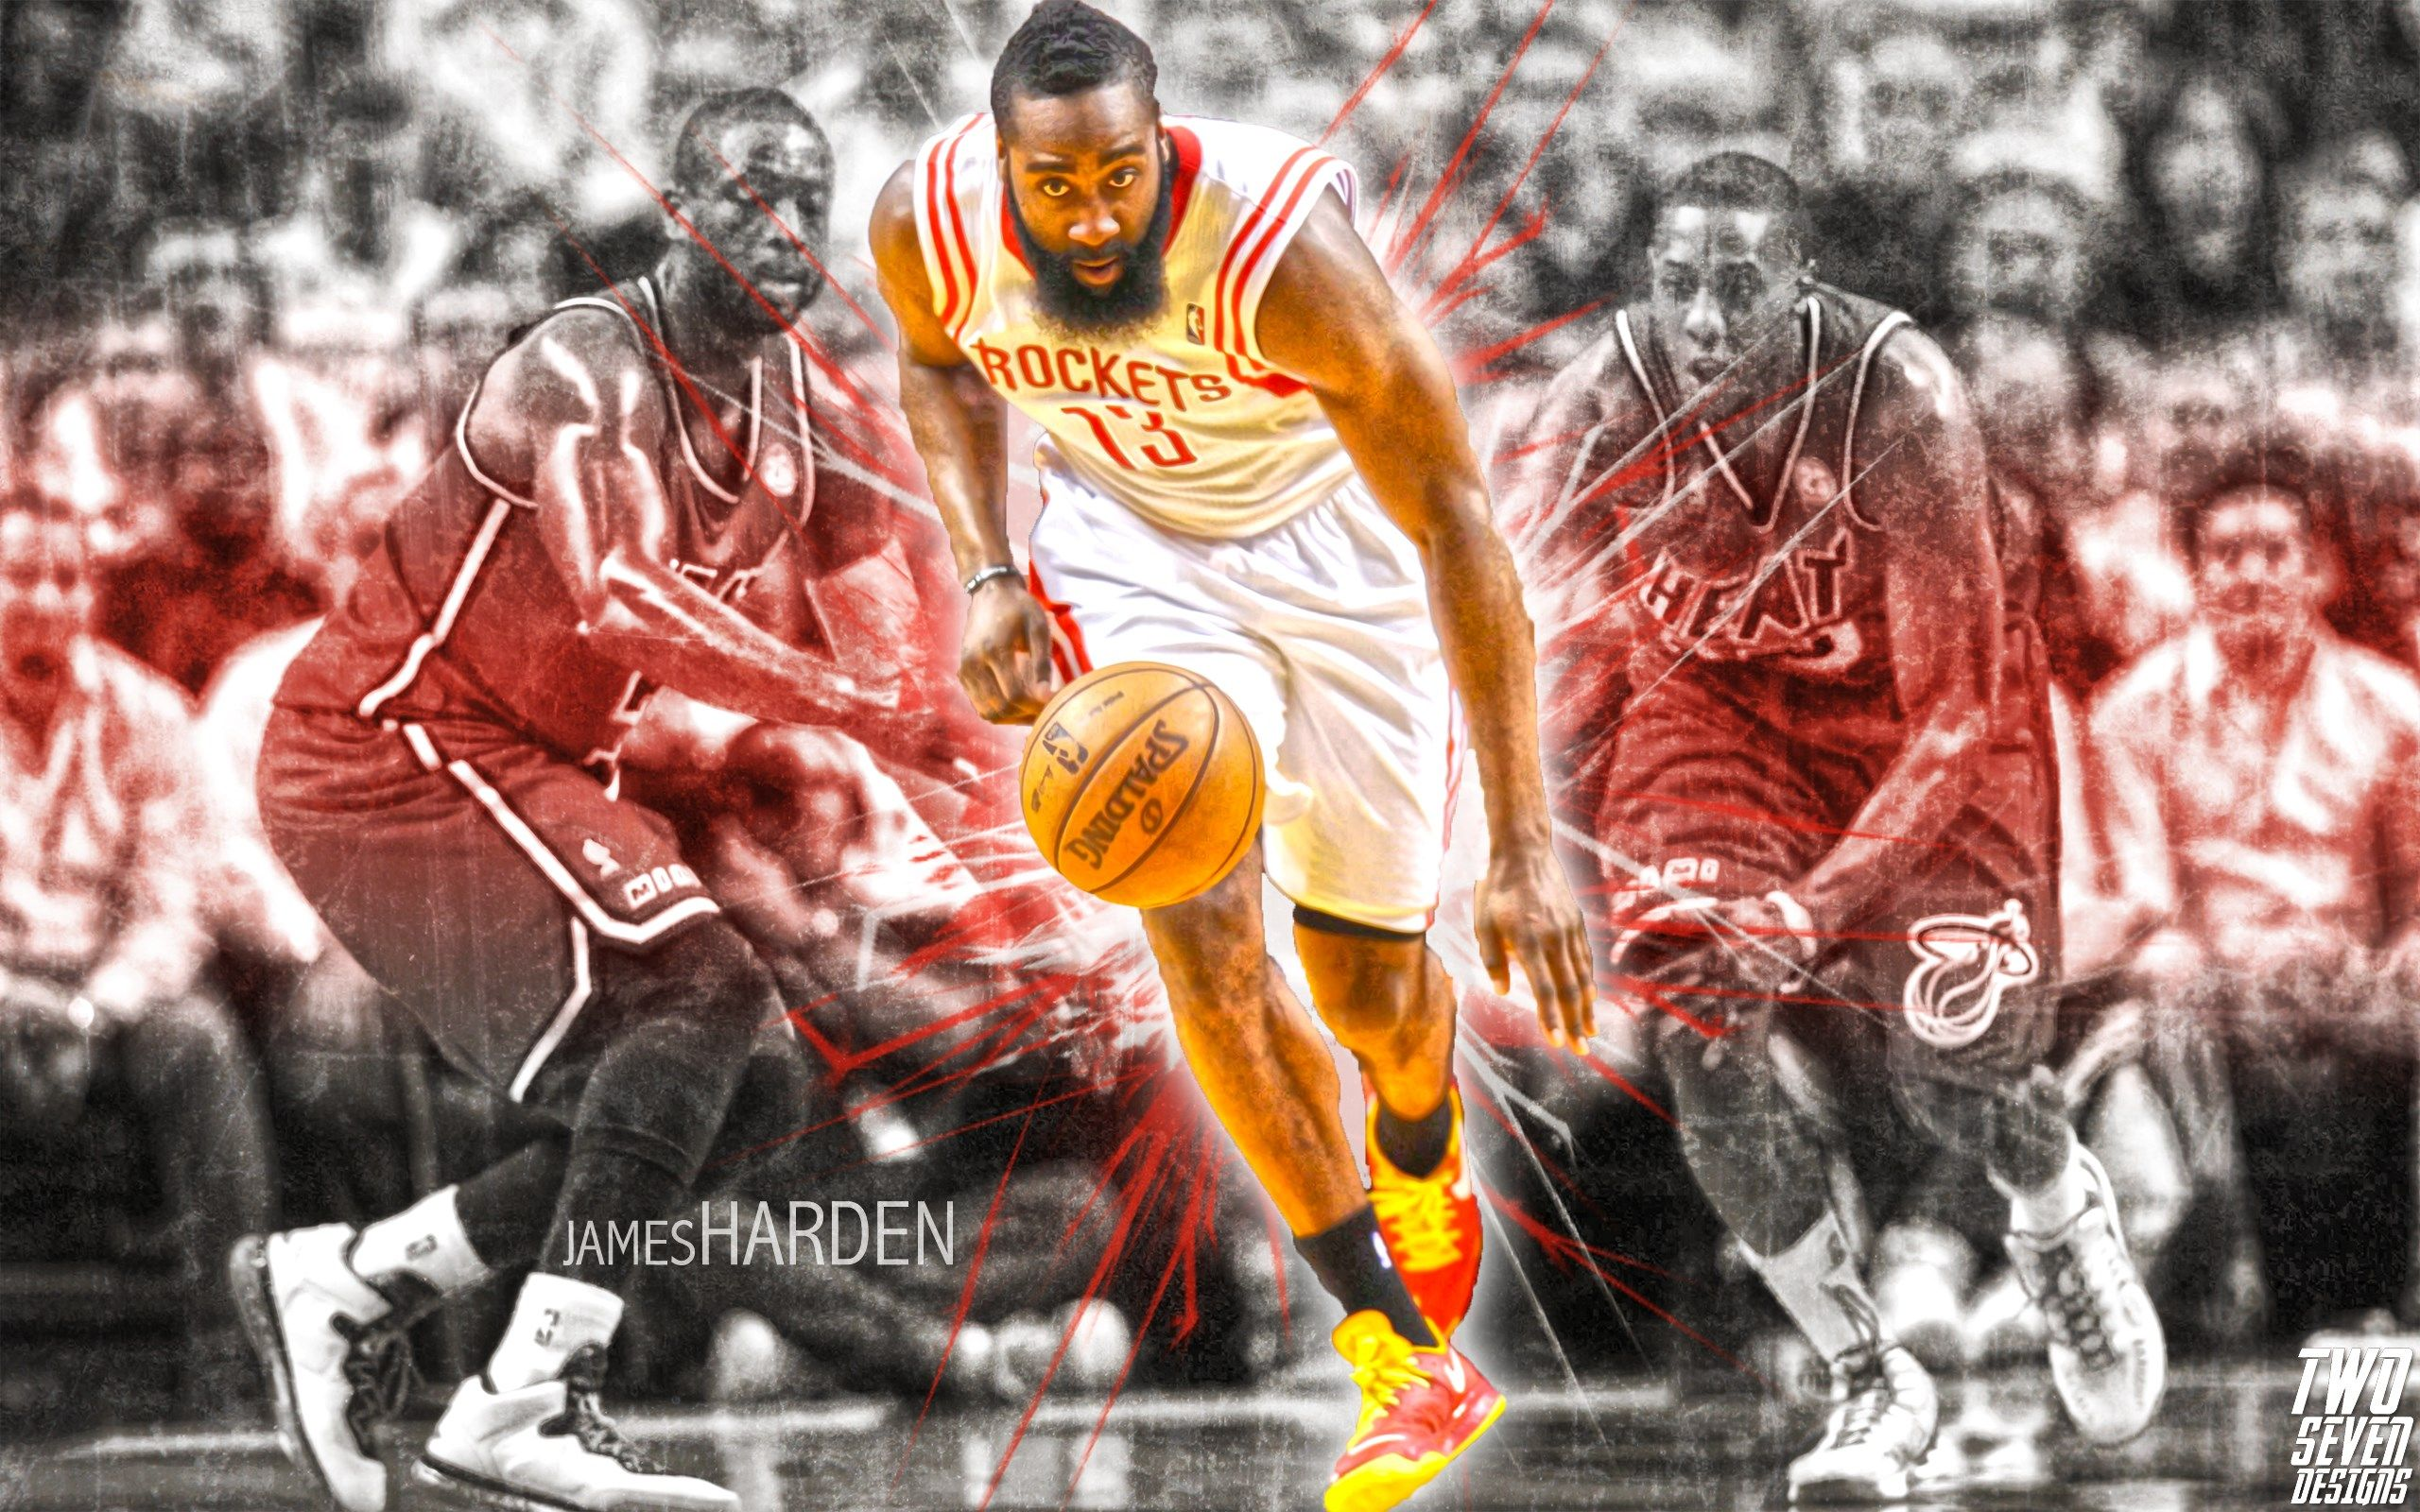 Free Screensaver Wallpapers For James Harden Nba Background Nba Wallpapers James Harden